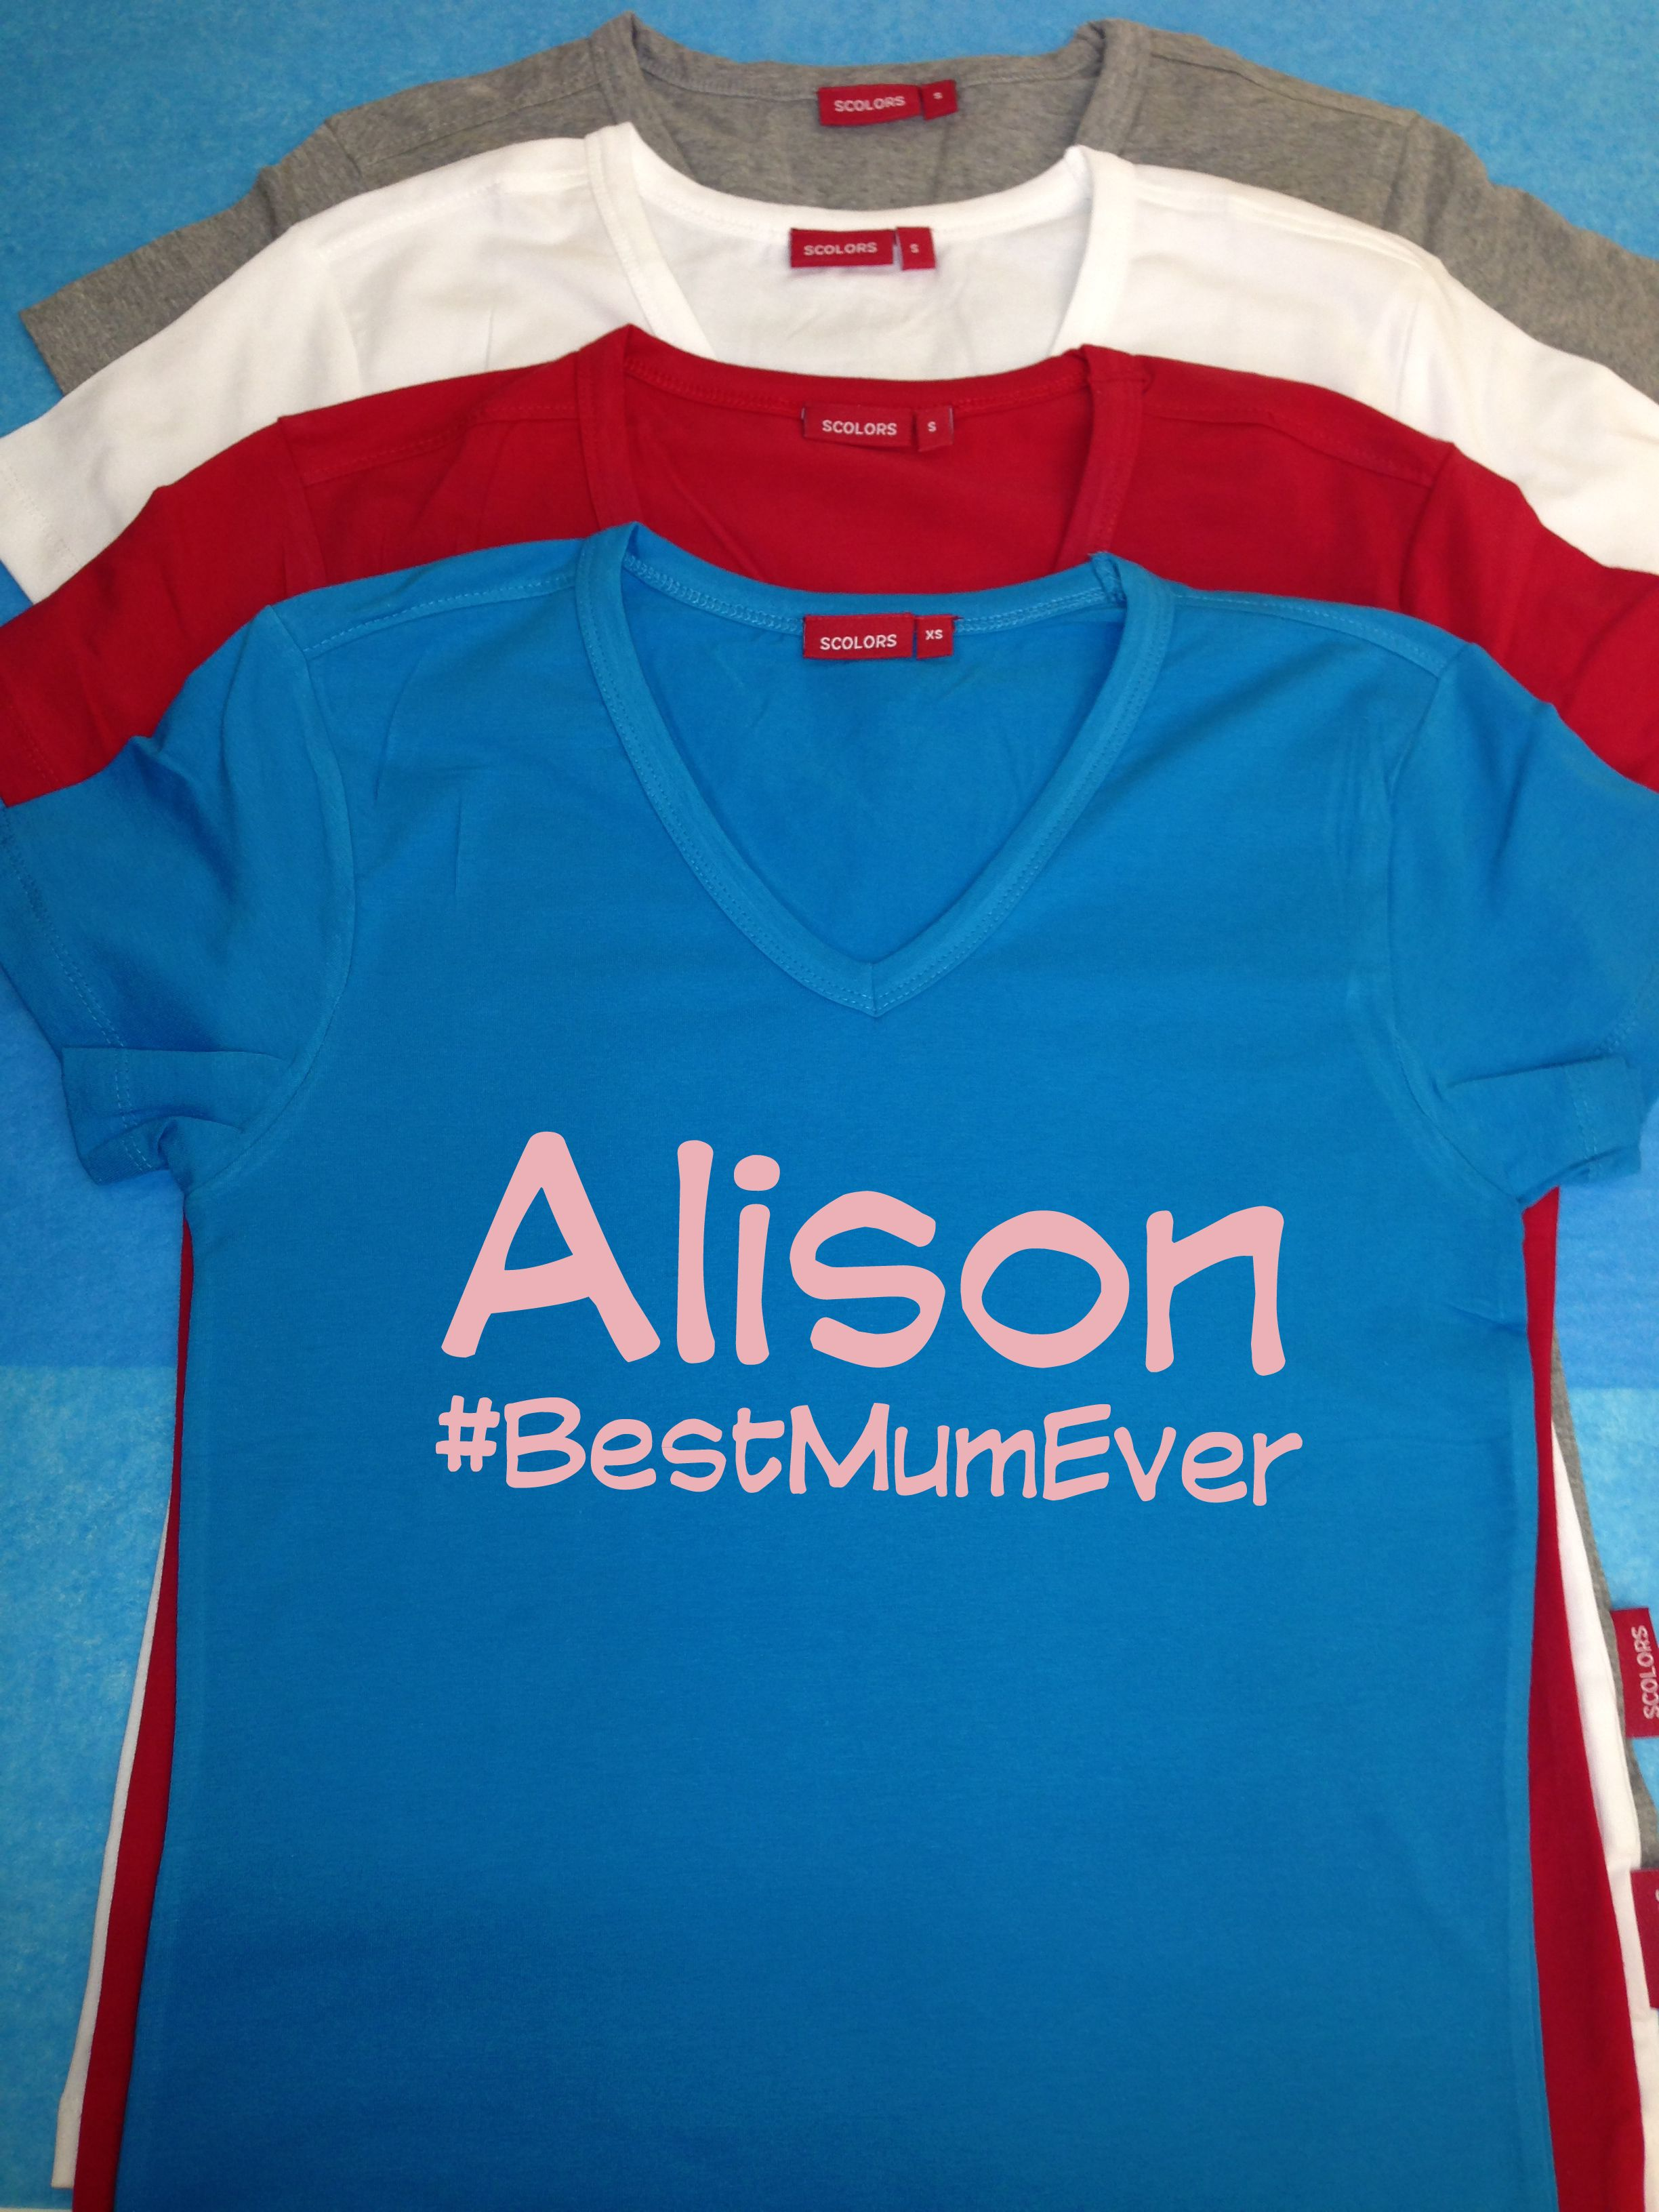 Personalised Women's #HashTag T Shirt - Perfect present idea for Mothers Day #BestMumEver